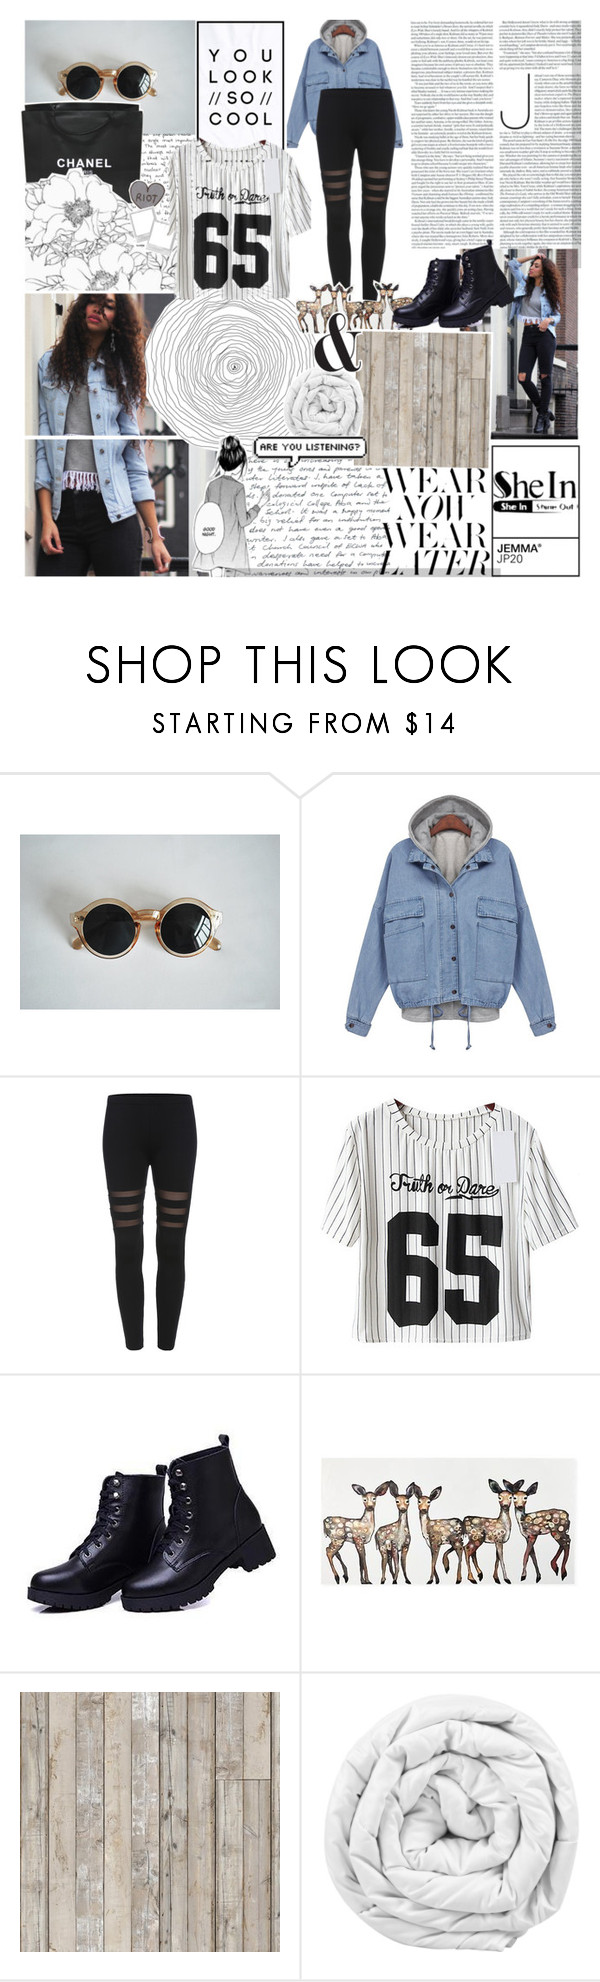 """""""If ''Happy Ever After'' did exist i would still be holding you like this"""" by evakixar ❤ liked on Polyvore featuring Monde, Chanel, PAM, Boodles, Piet Hein Eek, Brinkhaus and Lacava"""